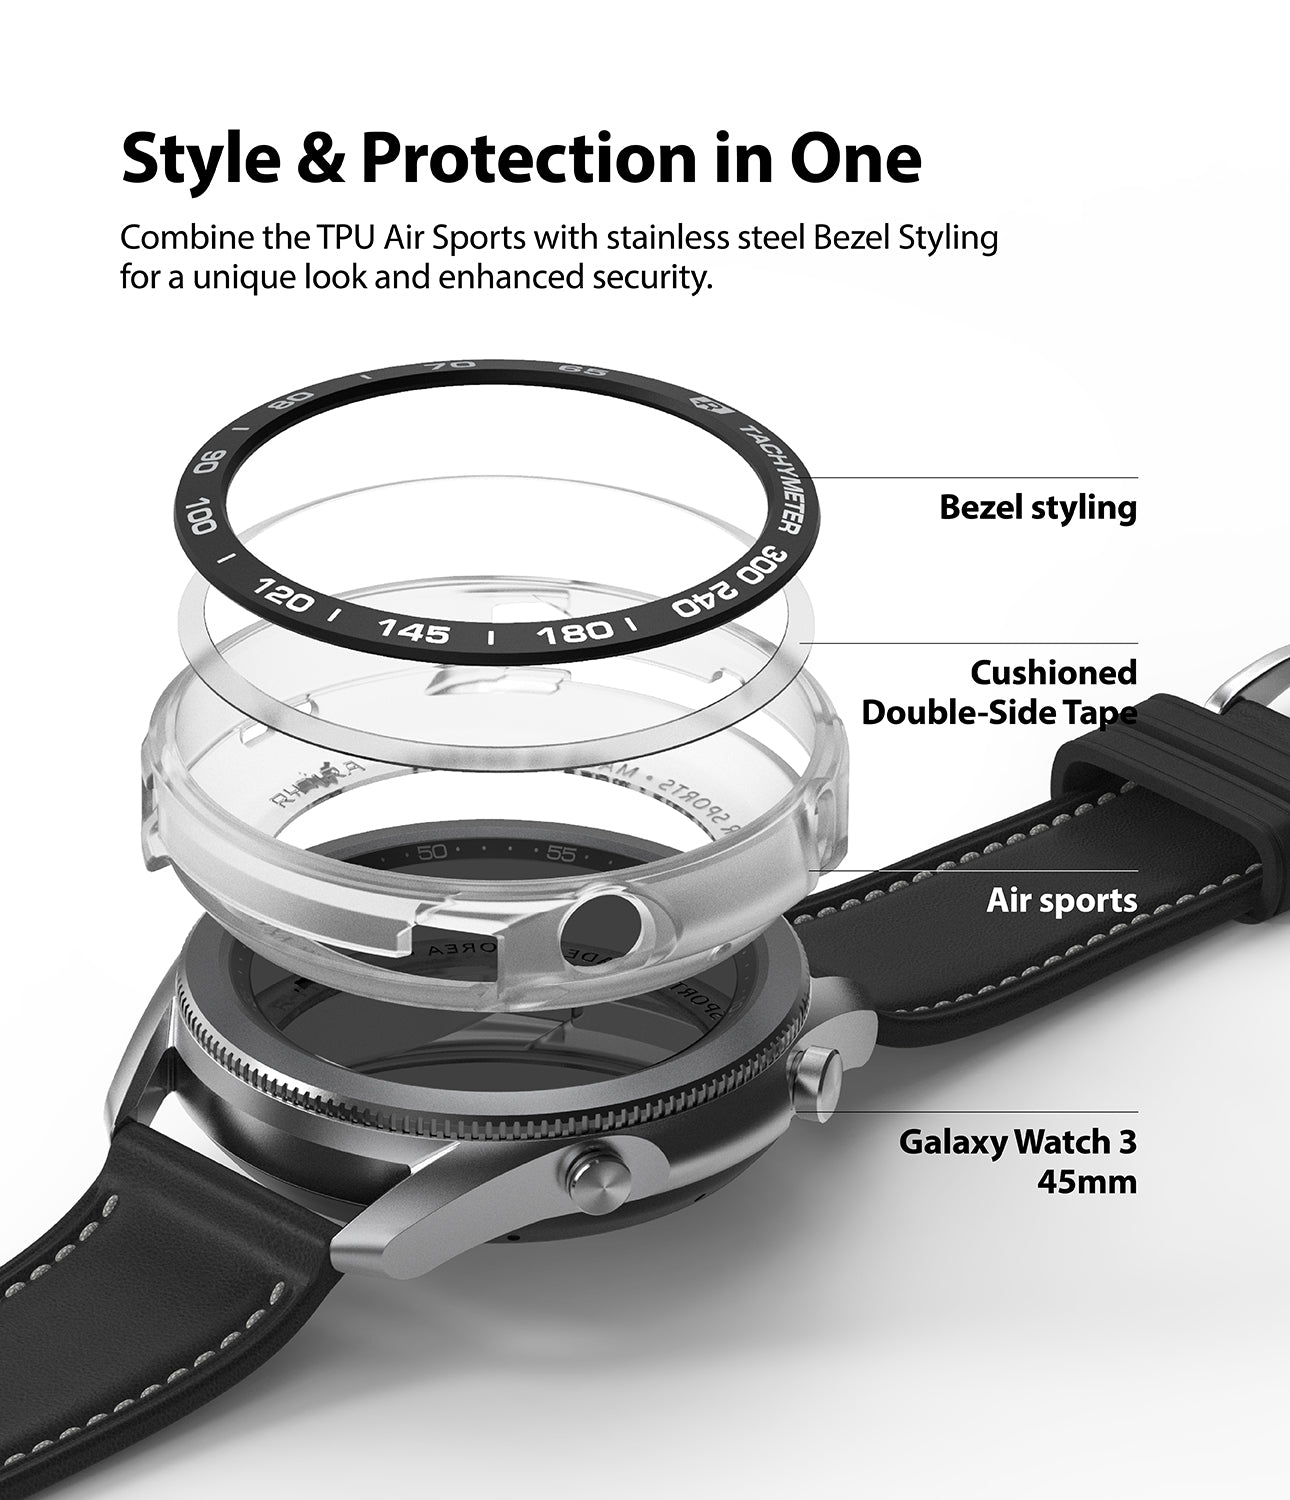 combine the TPU and Air Sports with stainless steel Bezel Styling for a unique look and enhance security